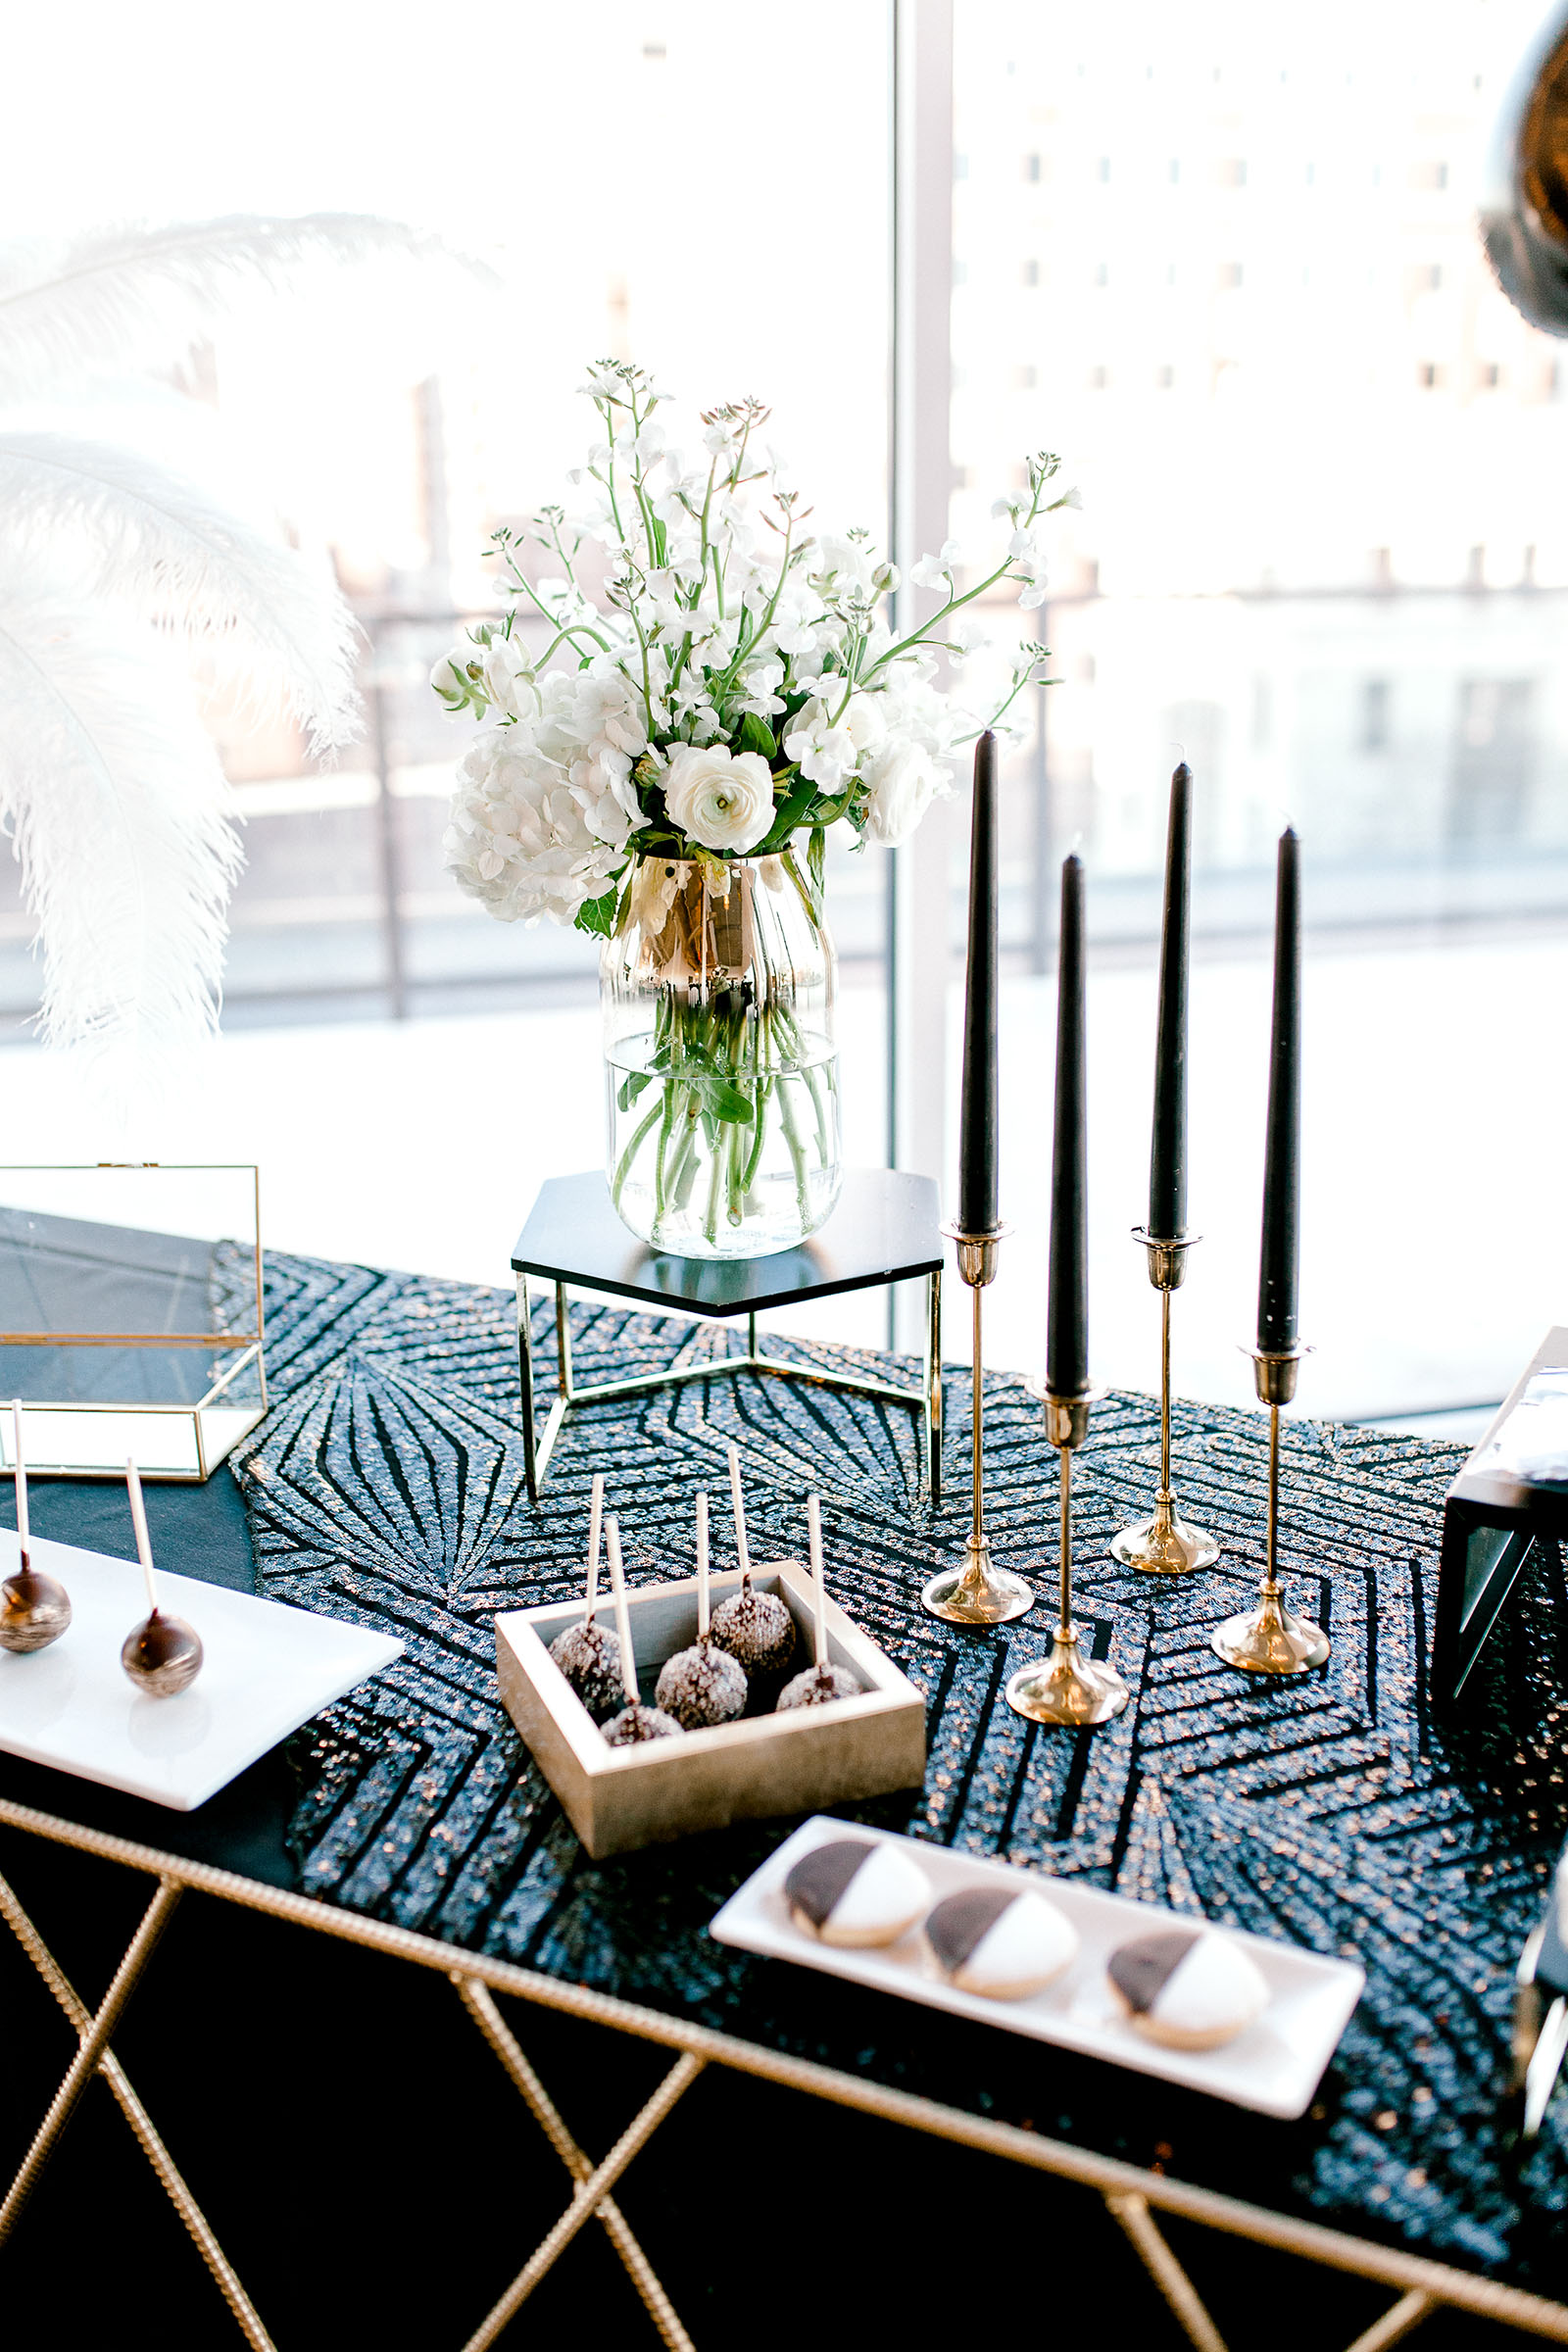 Dessert Table styled by Popseri